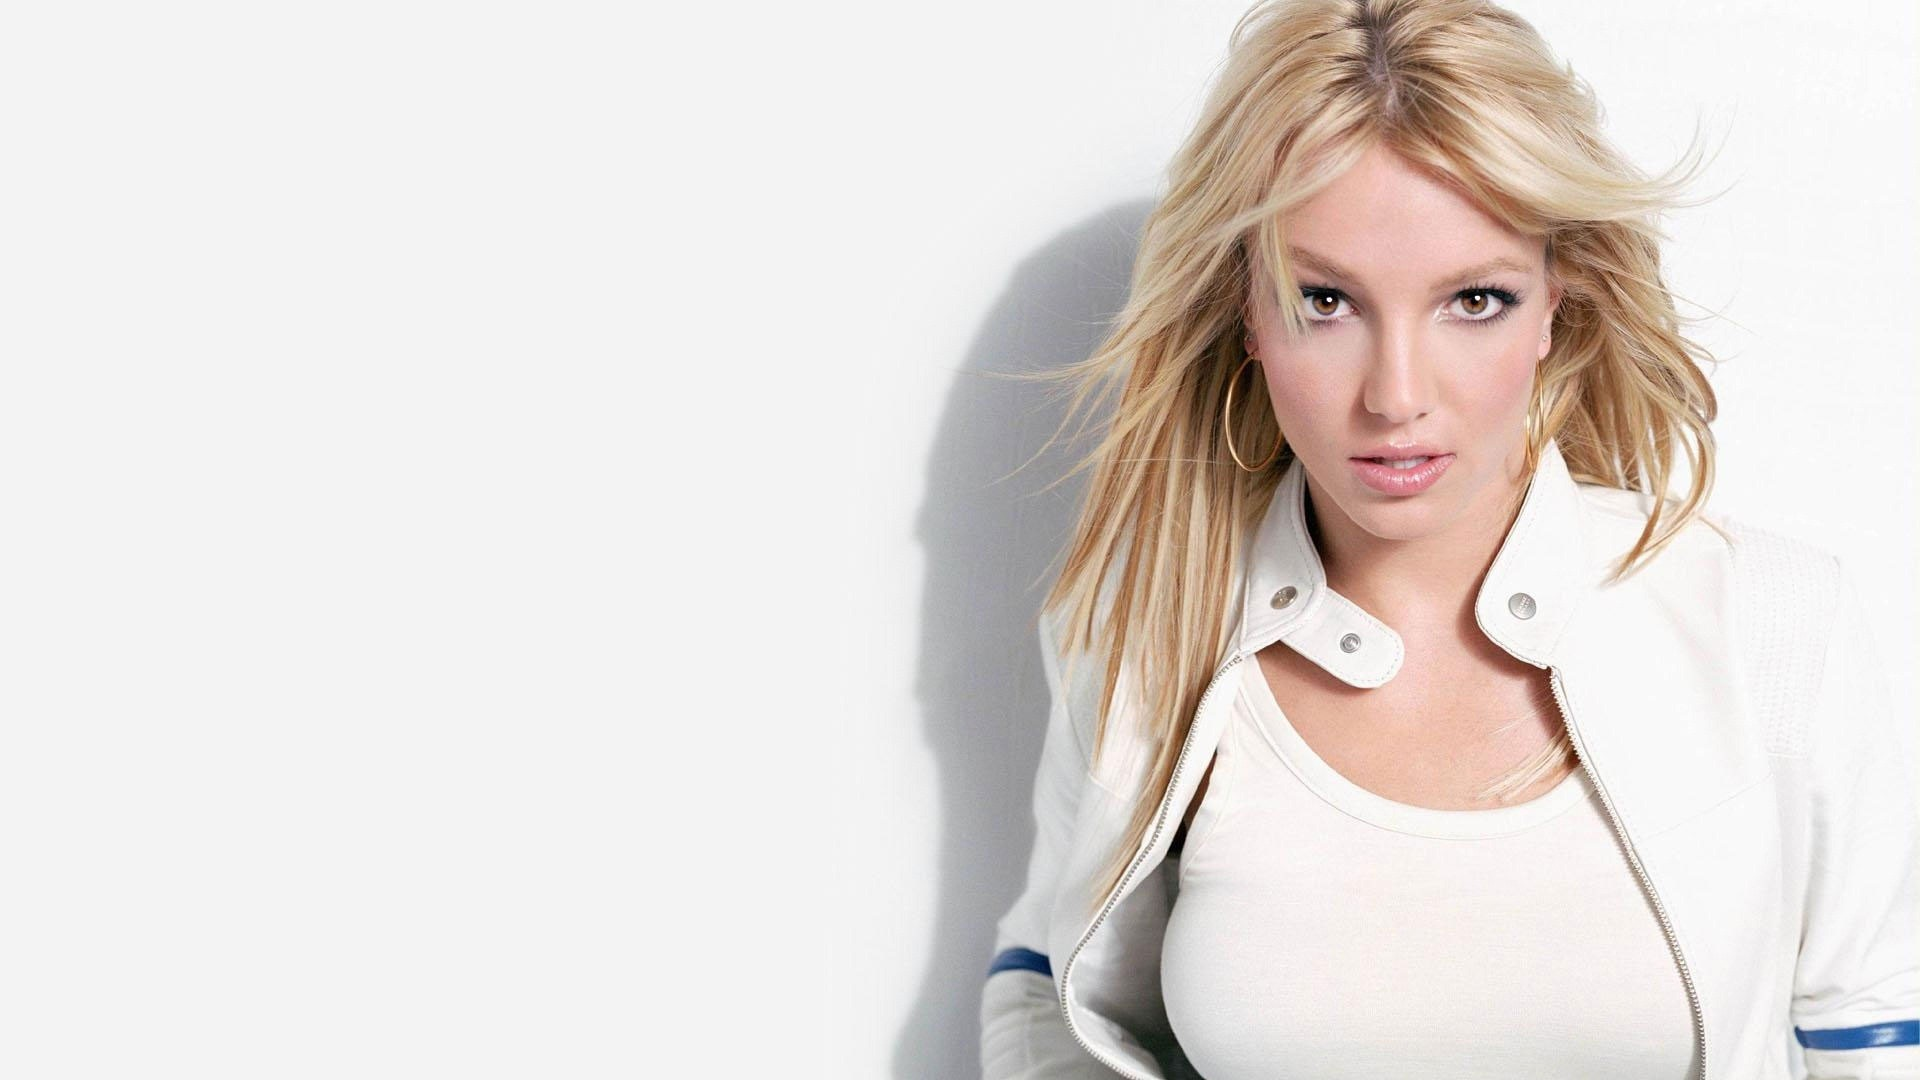 1920x1080 1000+ ideas about Britney Spears Wallpaper on Pinterest | Britney